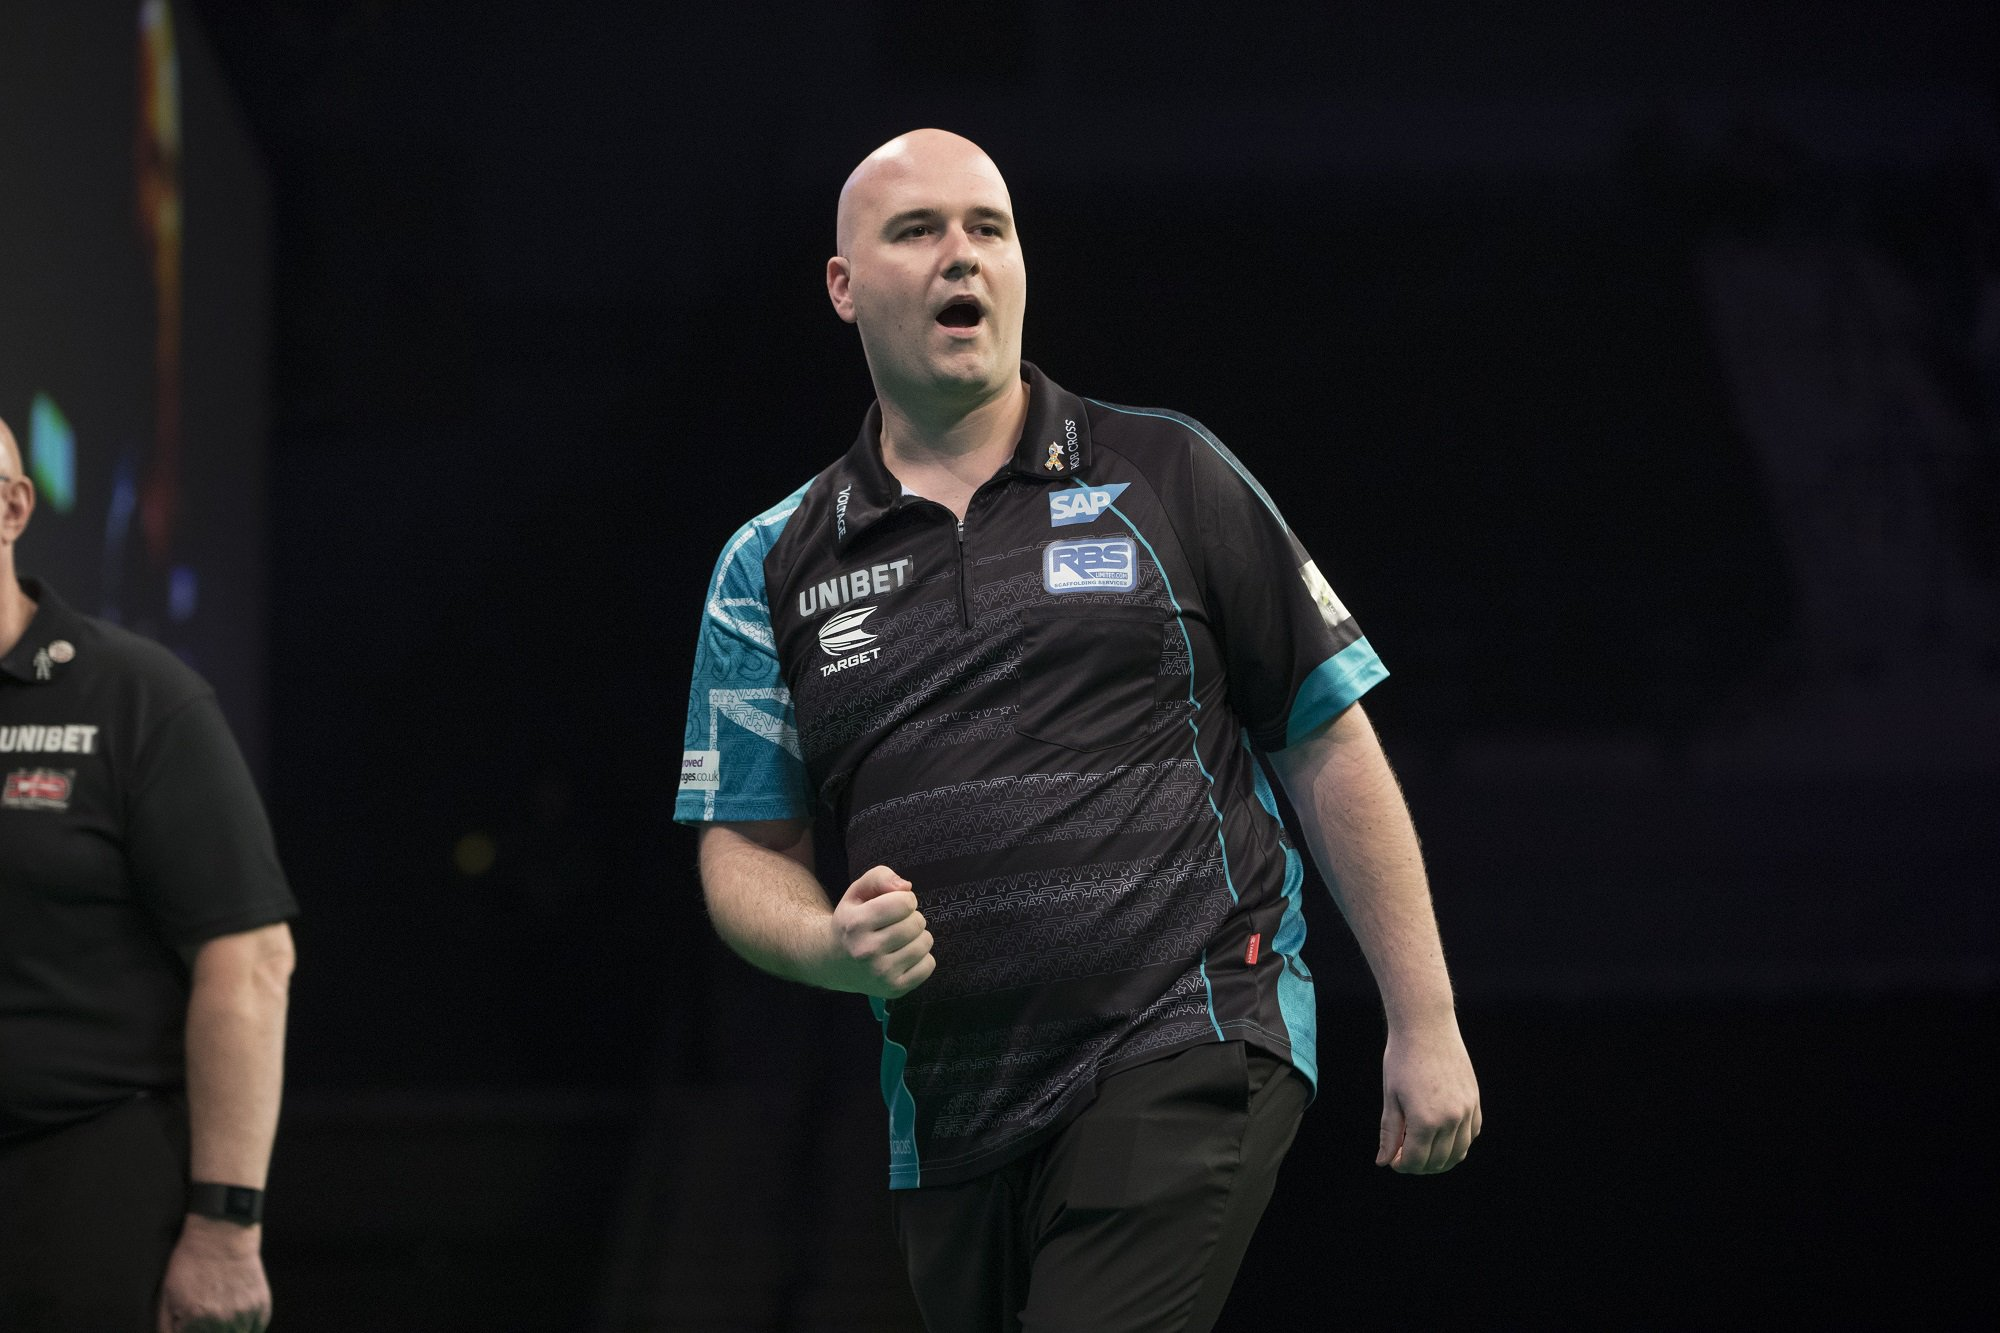 Premier League Darts Results: Impressive Cross stays top while MVG hammers Smith